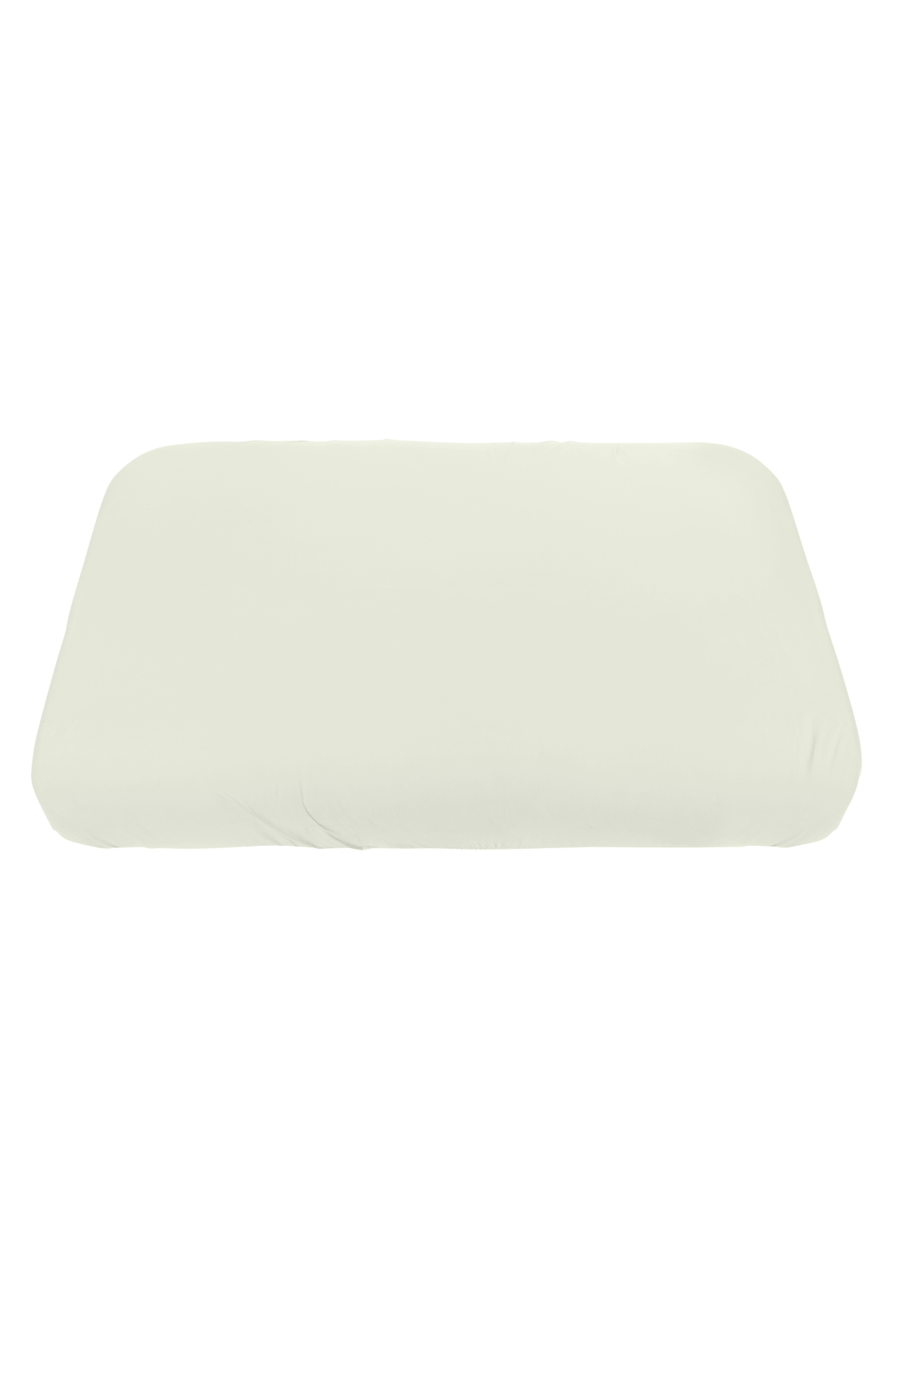 Sebra Waterproof Fitted Sheet - White